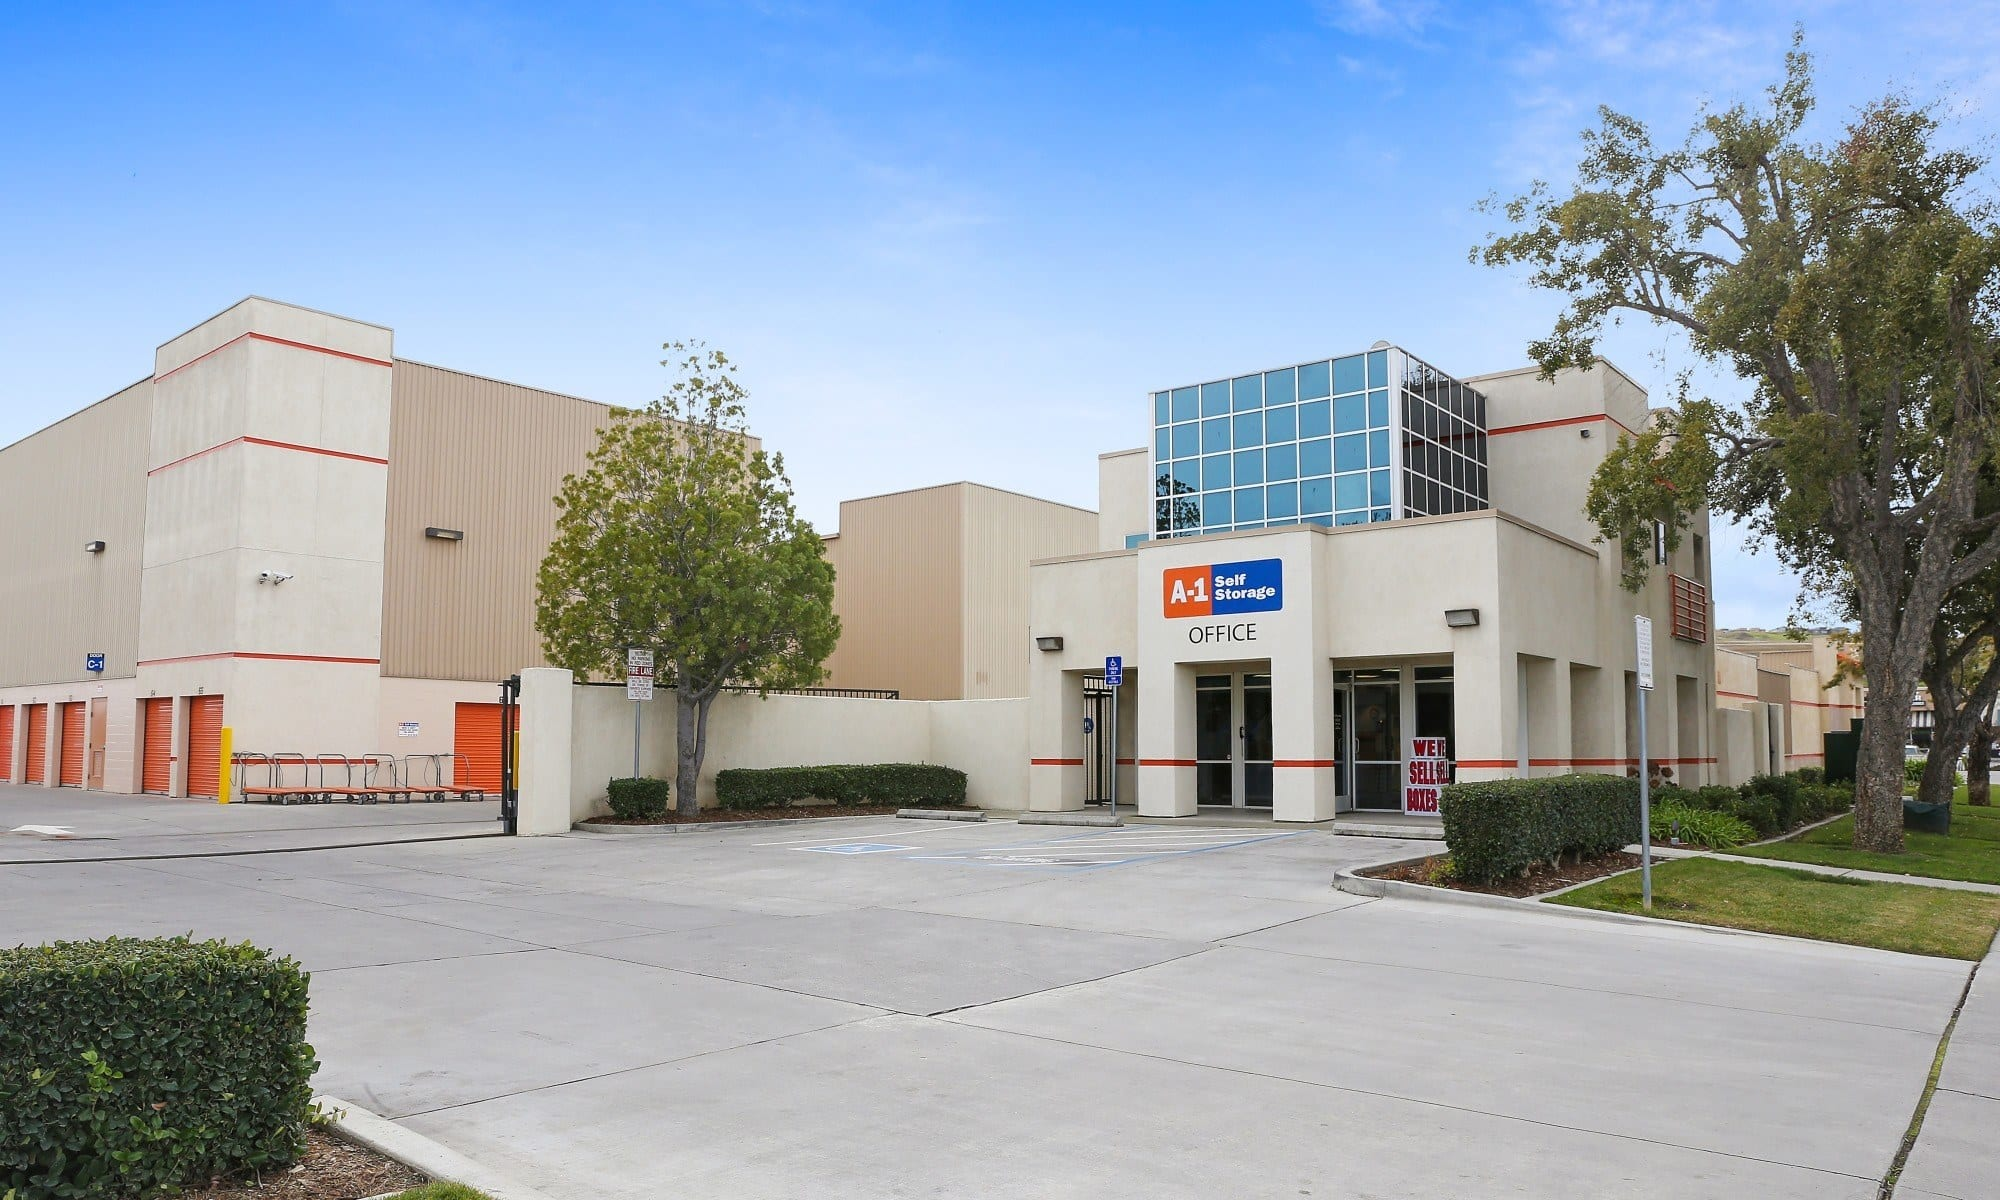 Self storage in San Jose CA